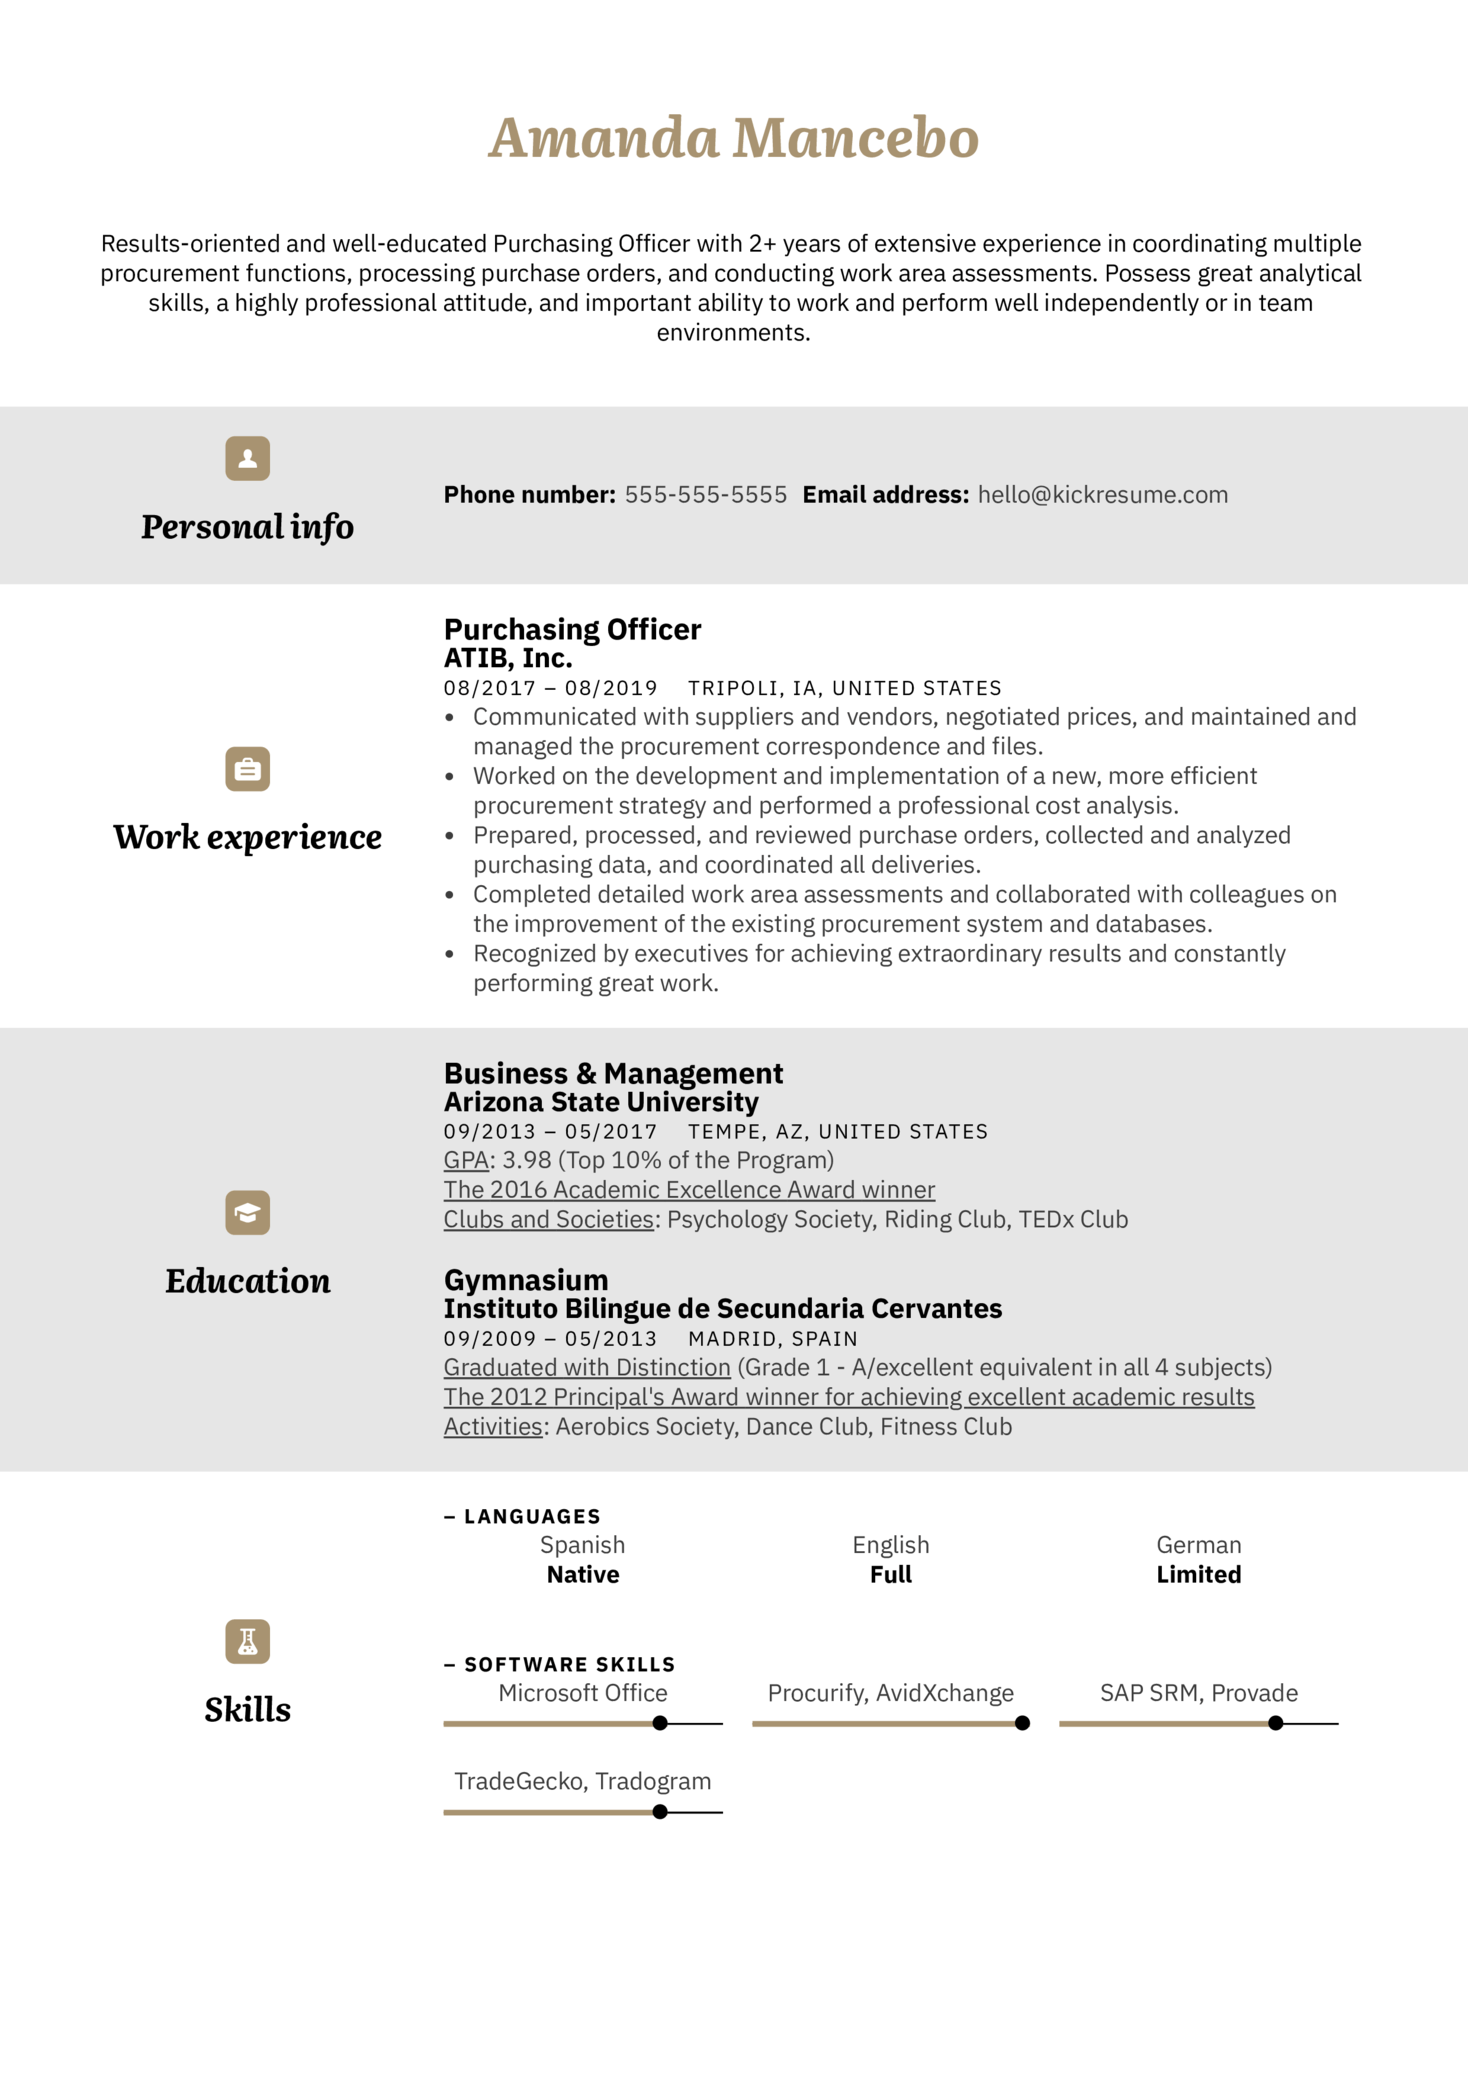 Purchasing Officer Resume Example (Part 1)